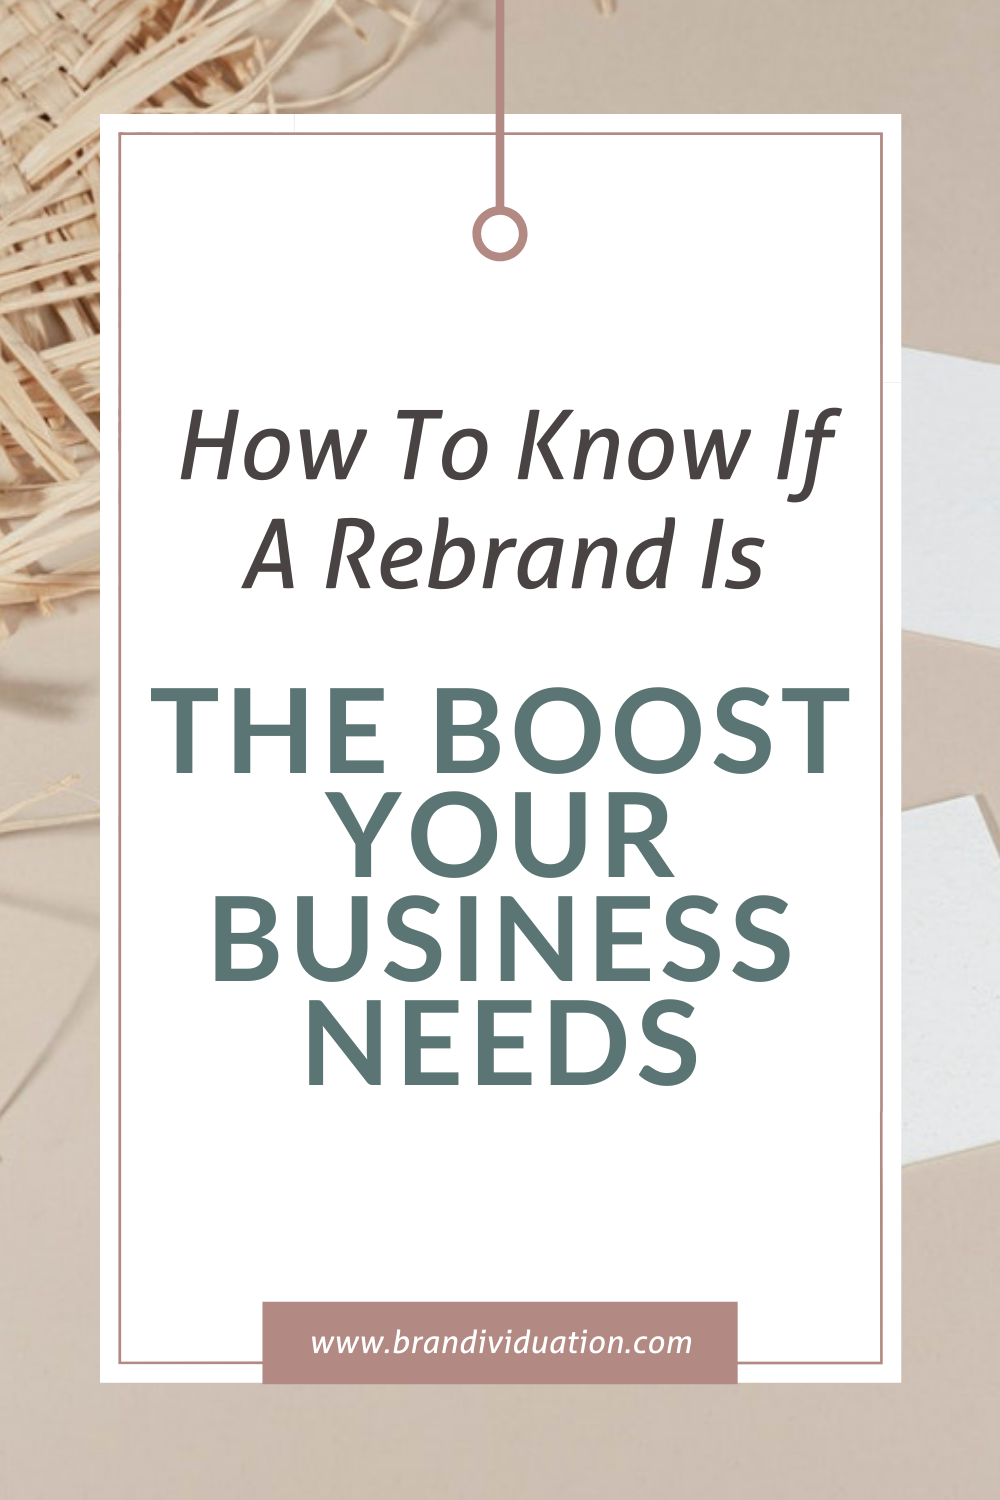 How To Know If A Rebrand Is The Boost Your Business Needs